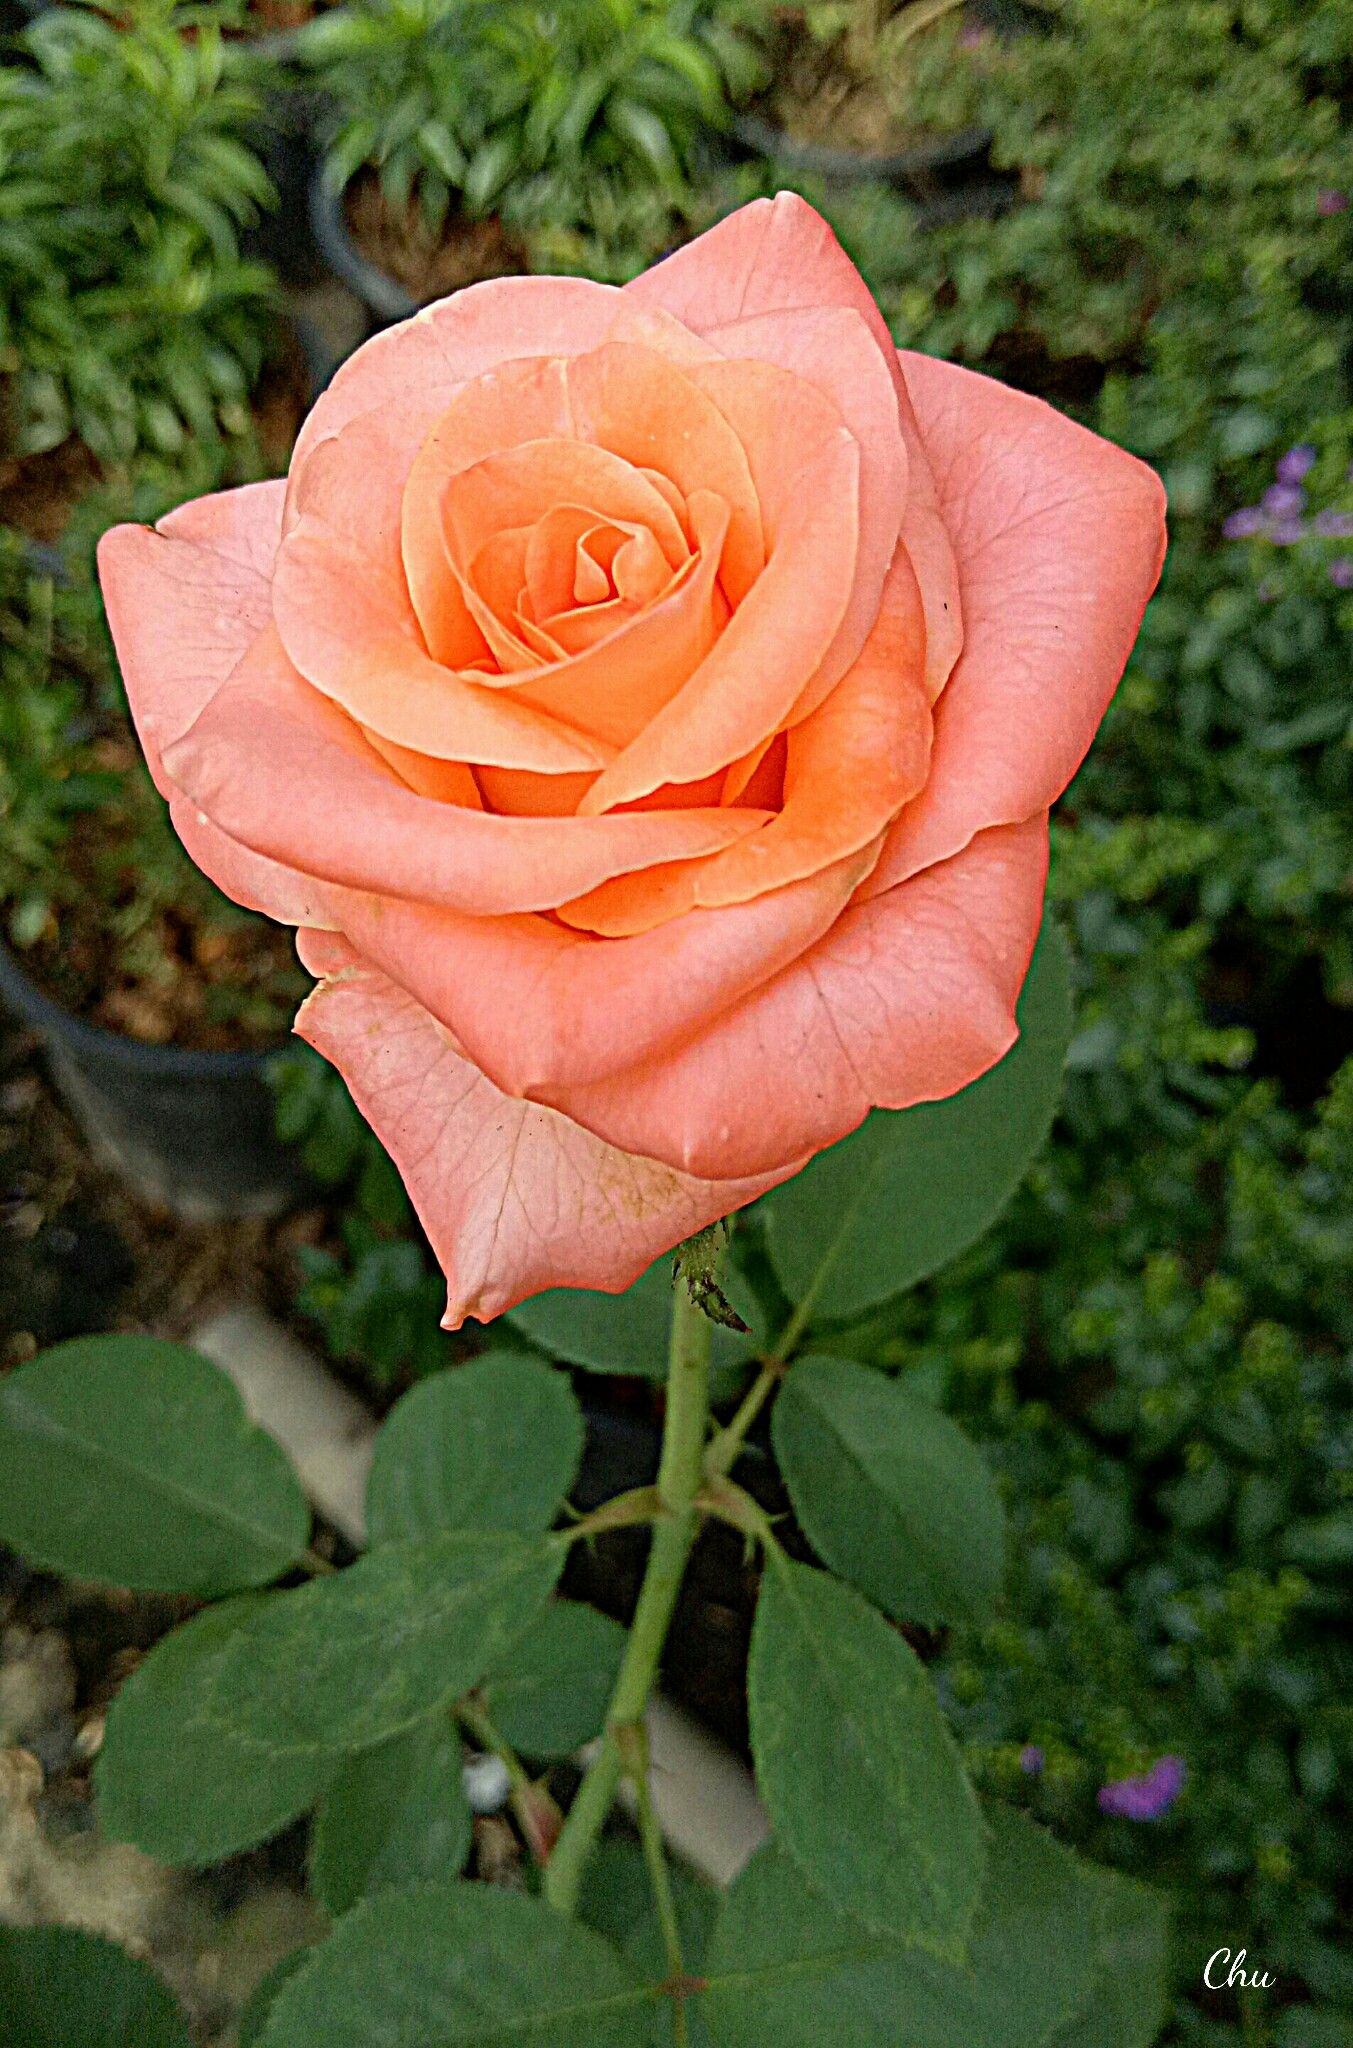 Beautiful rose roses pinterest rose flowers and gardens flower gardening planting flowers beautiful rose izmirmasajfo